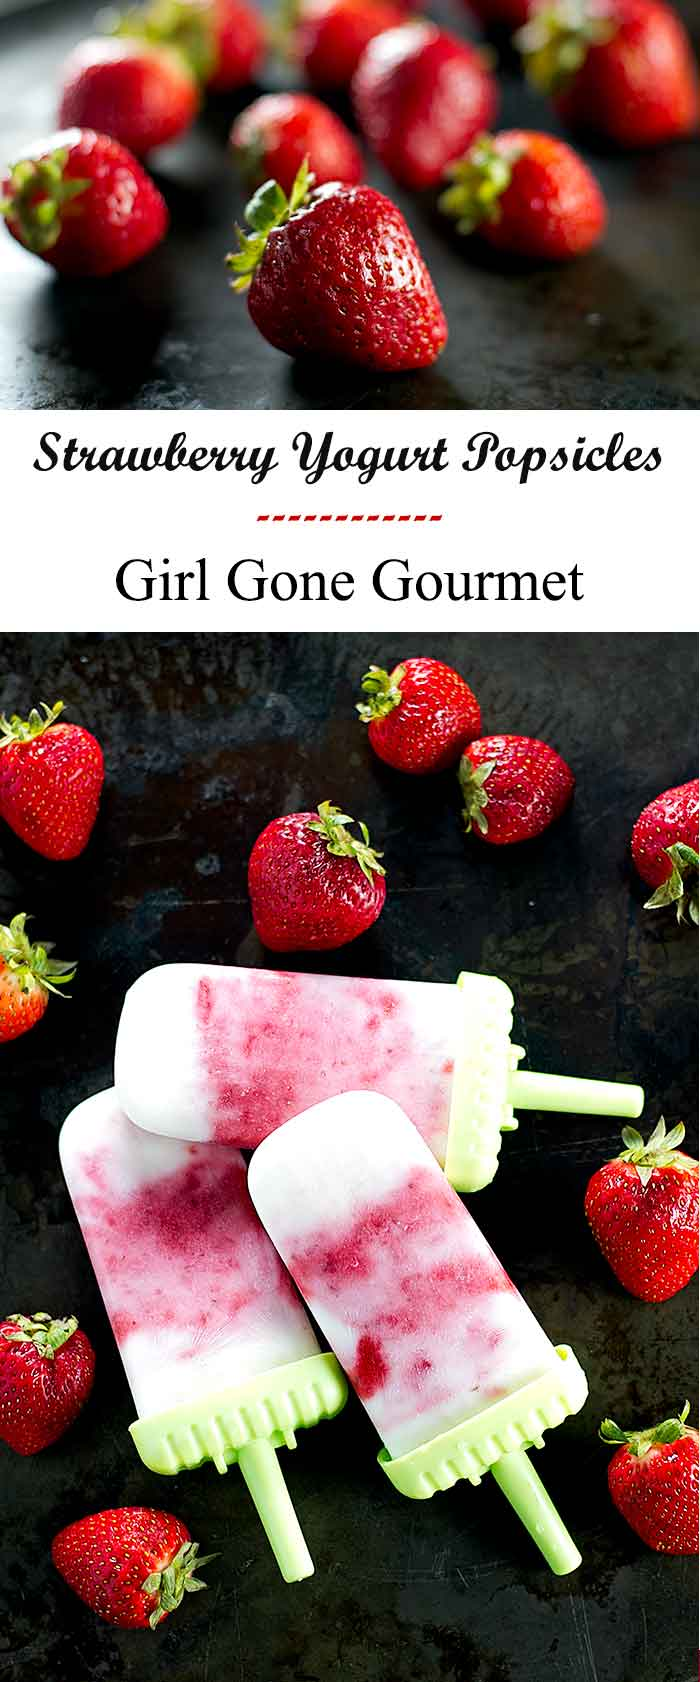 Simple greek yogurt and strawberry popsicles - a perfect treat for a hot summer day | girlgonegourmet.com